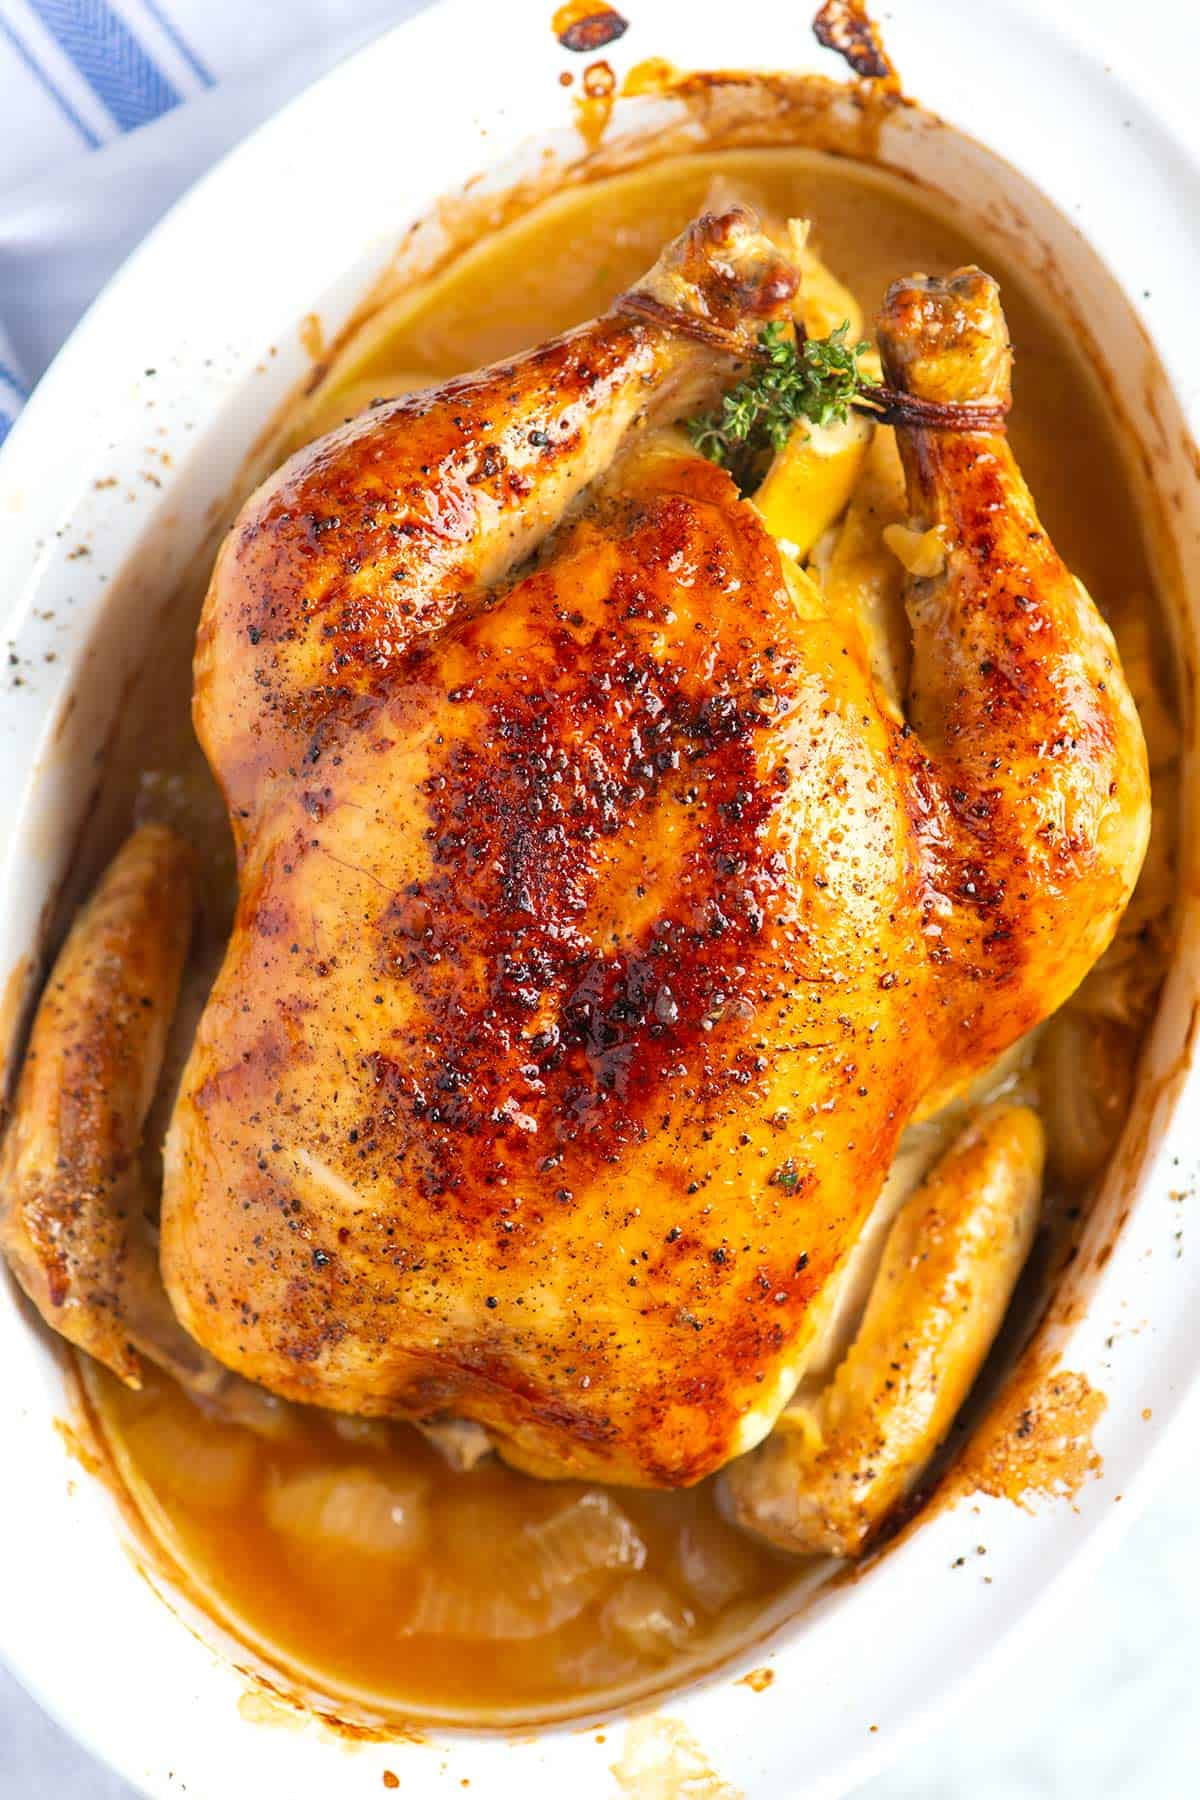 How to easily roast a whole chicken with lemon and garlic. The meat stays juicy and the chicken becomes ultra-flavorful.